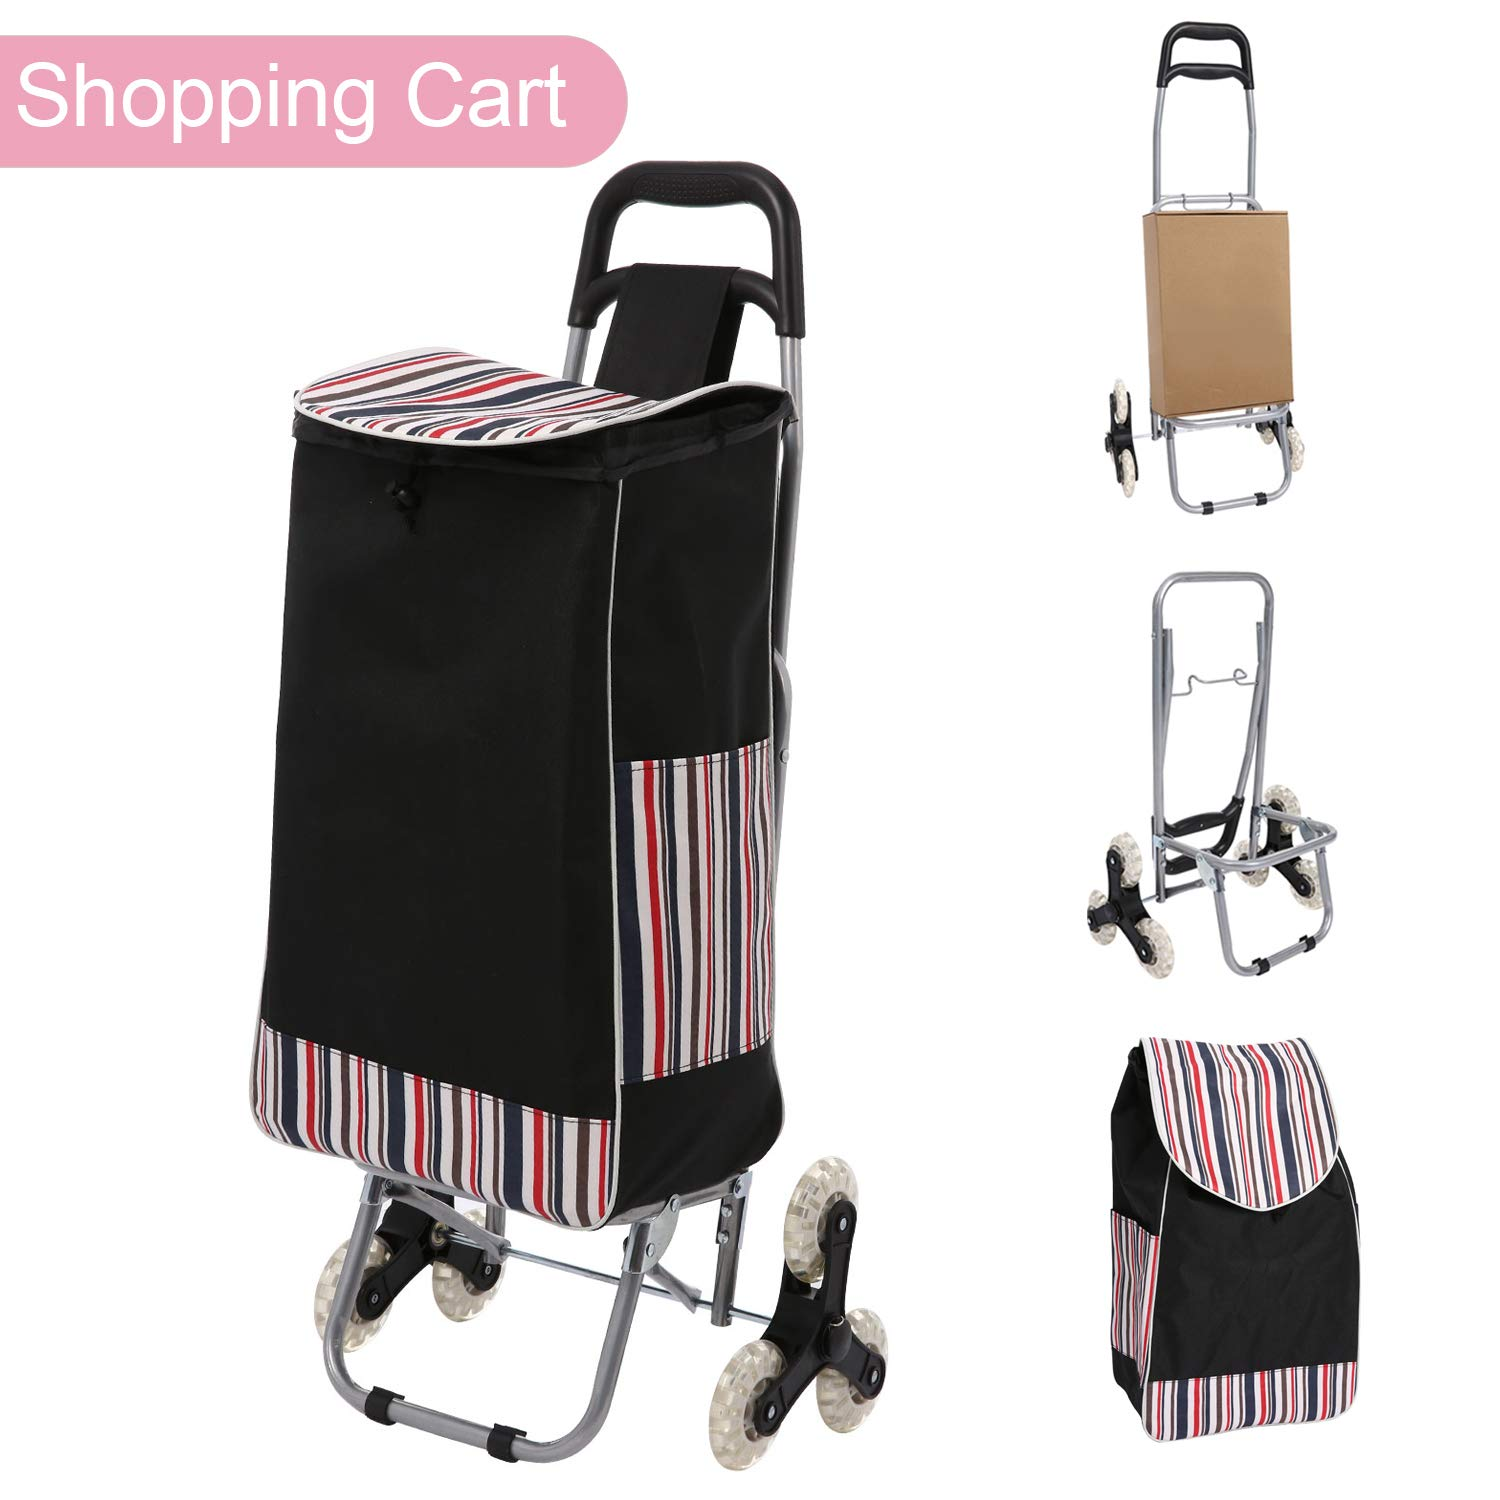 Folding Shopping Cart, Stair Climbing Cart Trolly Grocery Laundry Utility Cart with Wheel & Removable Waterproof Canvas Bag, 150lbs Capacity